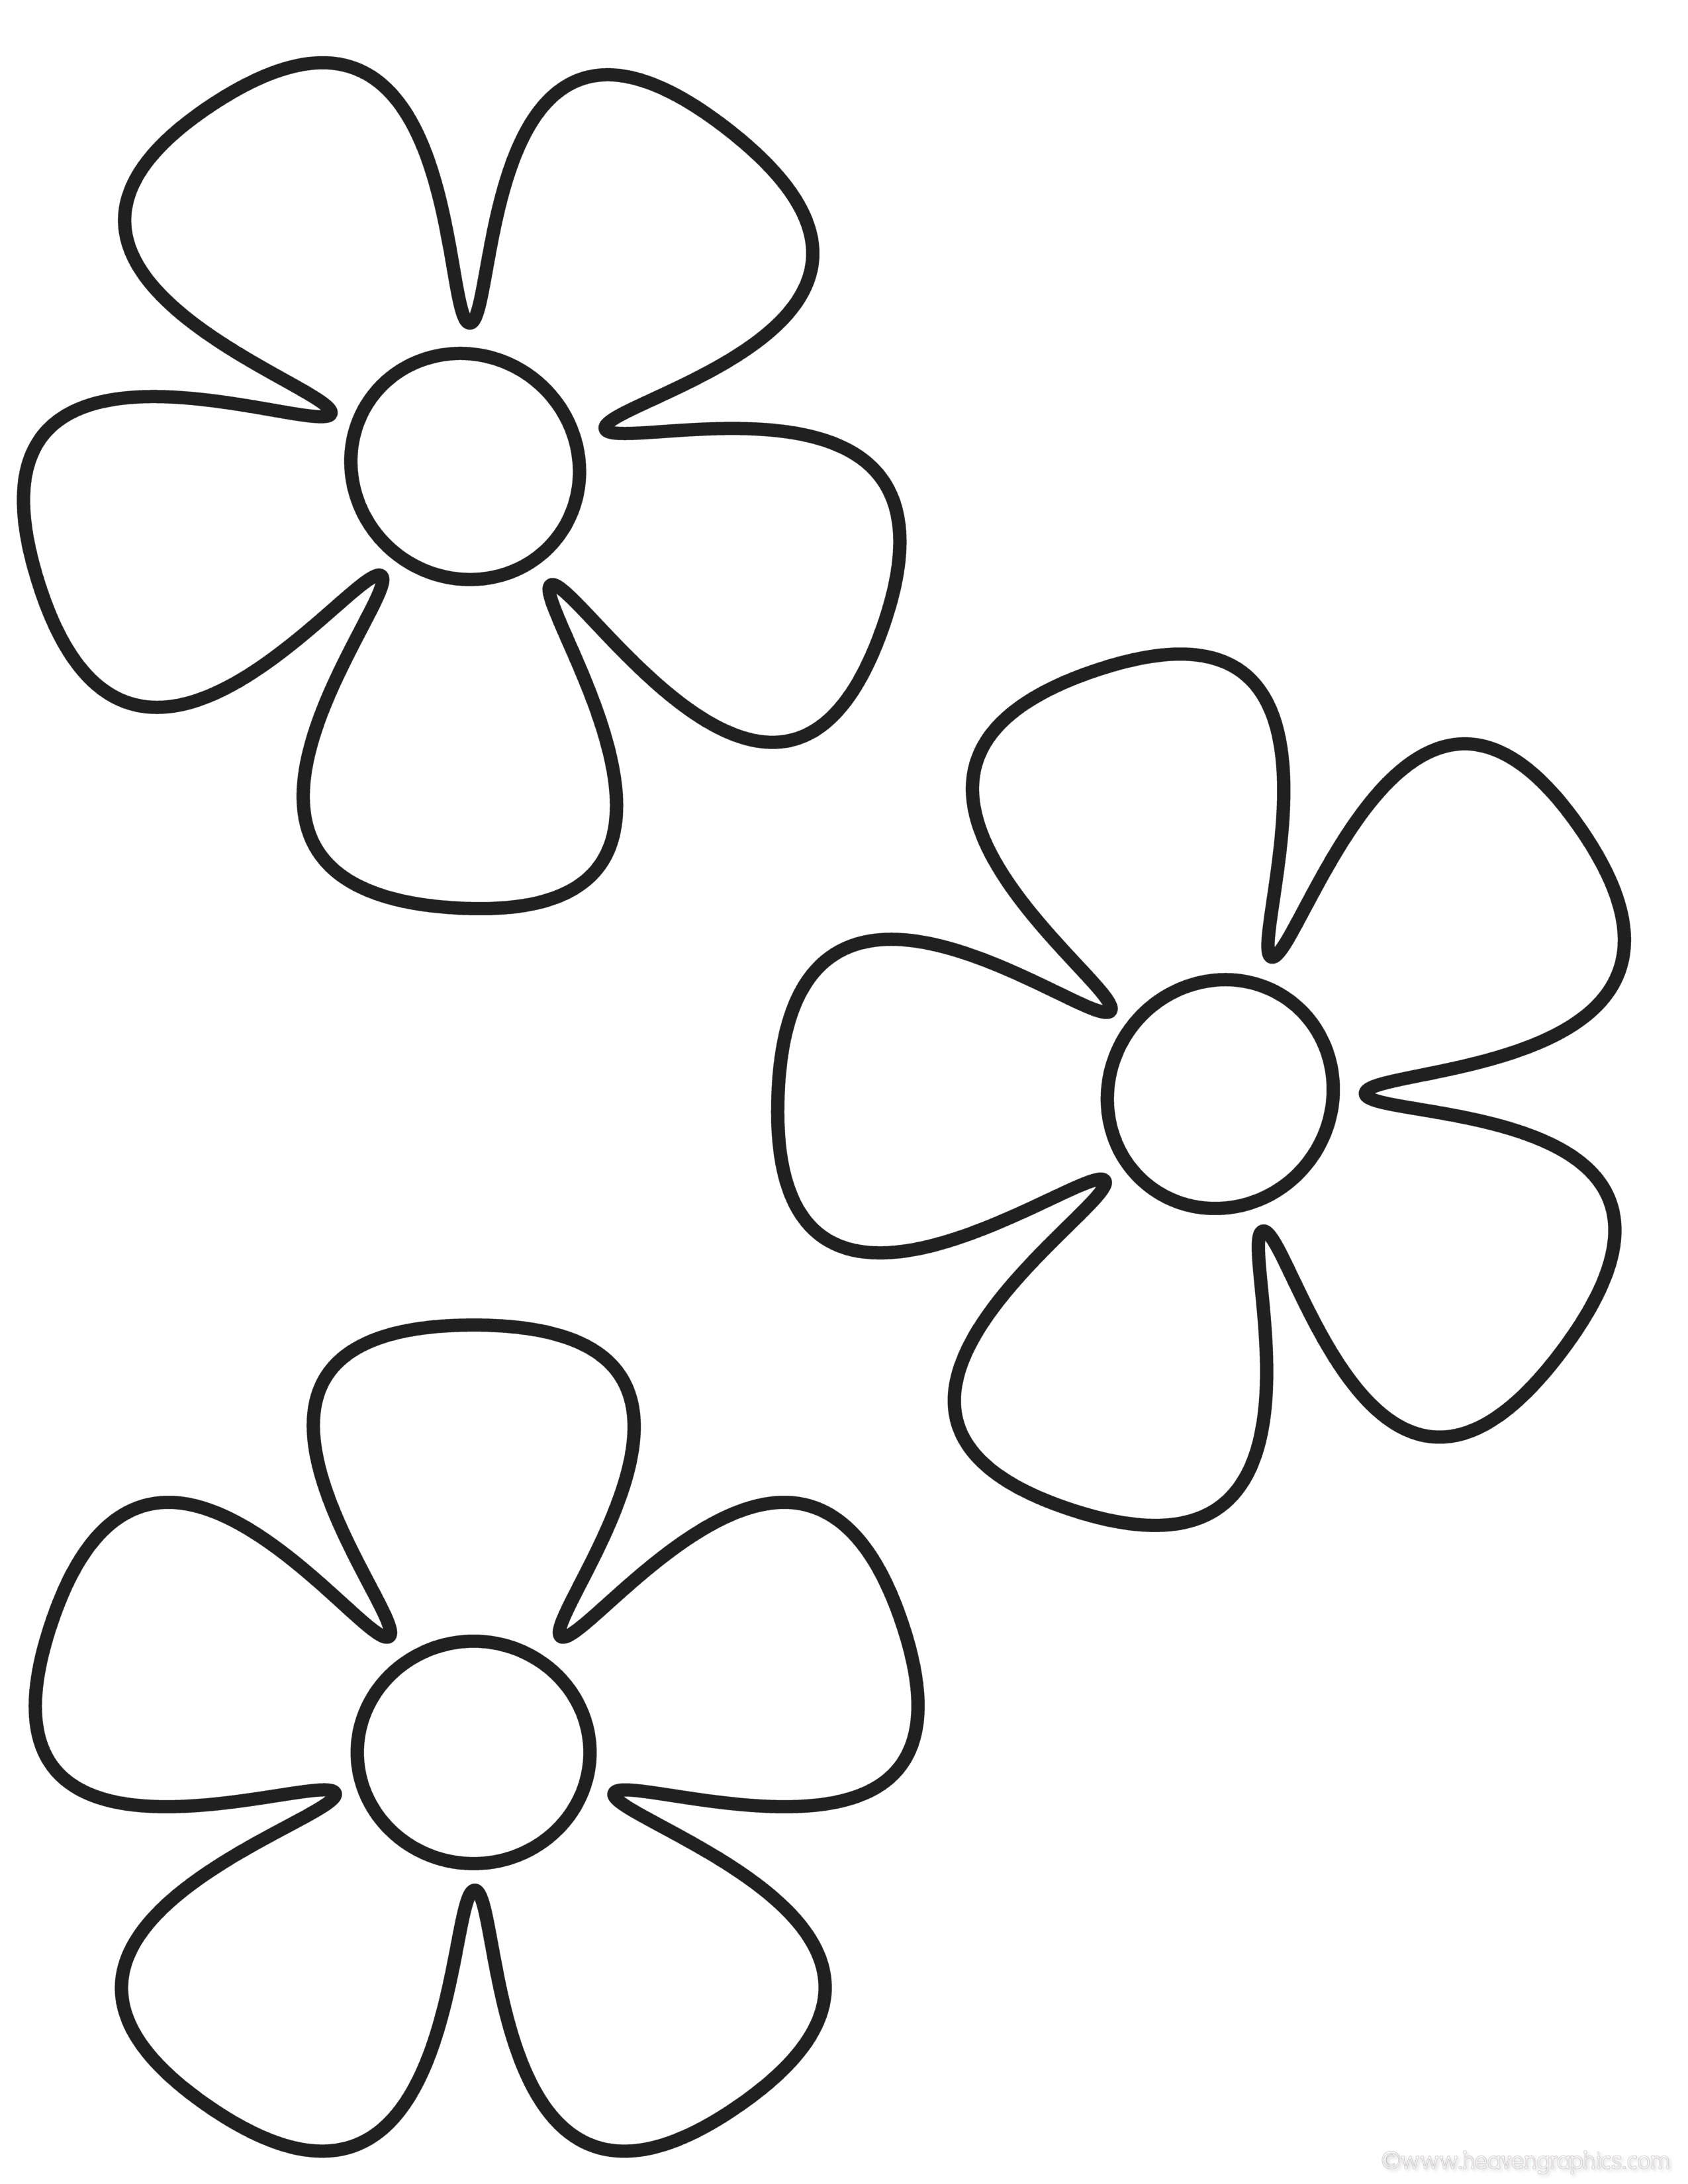 Awesome Free Printable Small Flower Coloring Pages And Pics Flower Wall Flower Coloring Sheets Flower Coloring Pages Printable Flower Coloring Pages